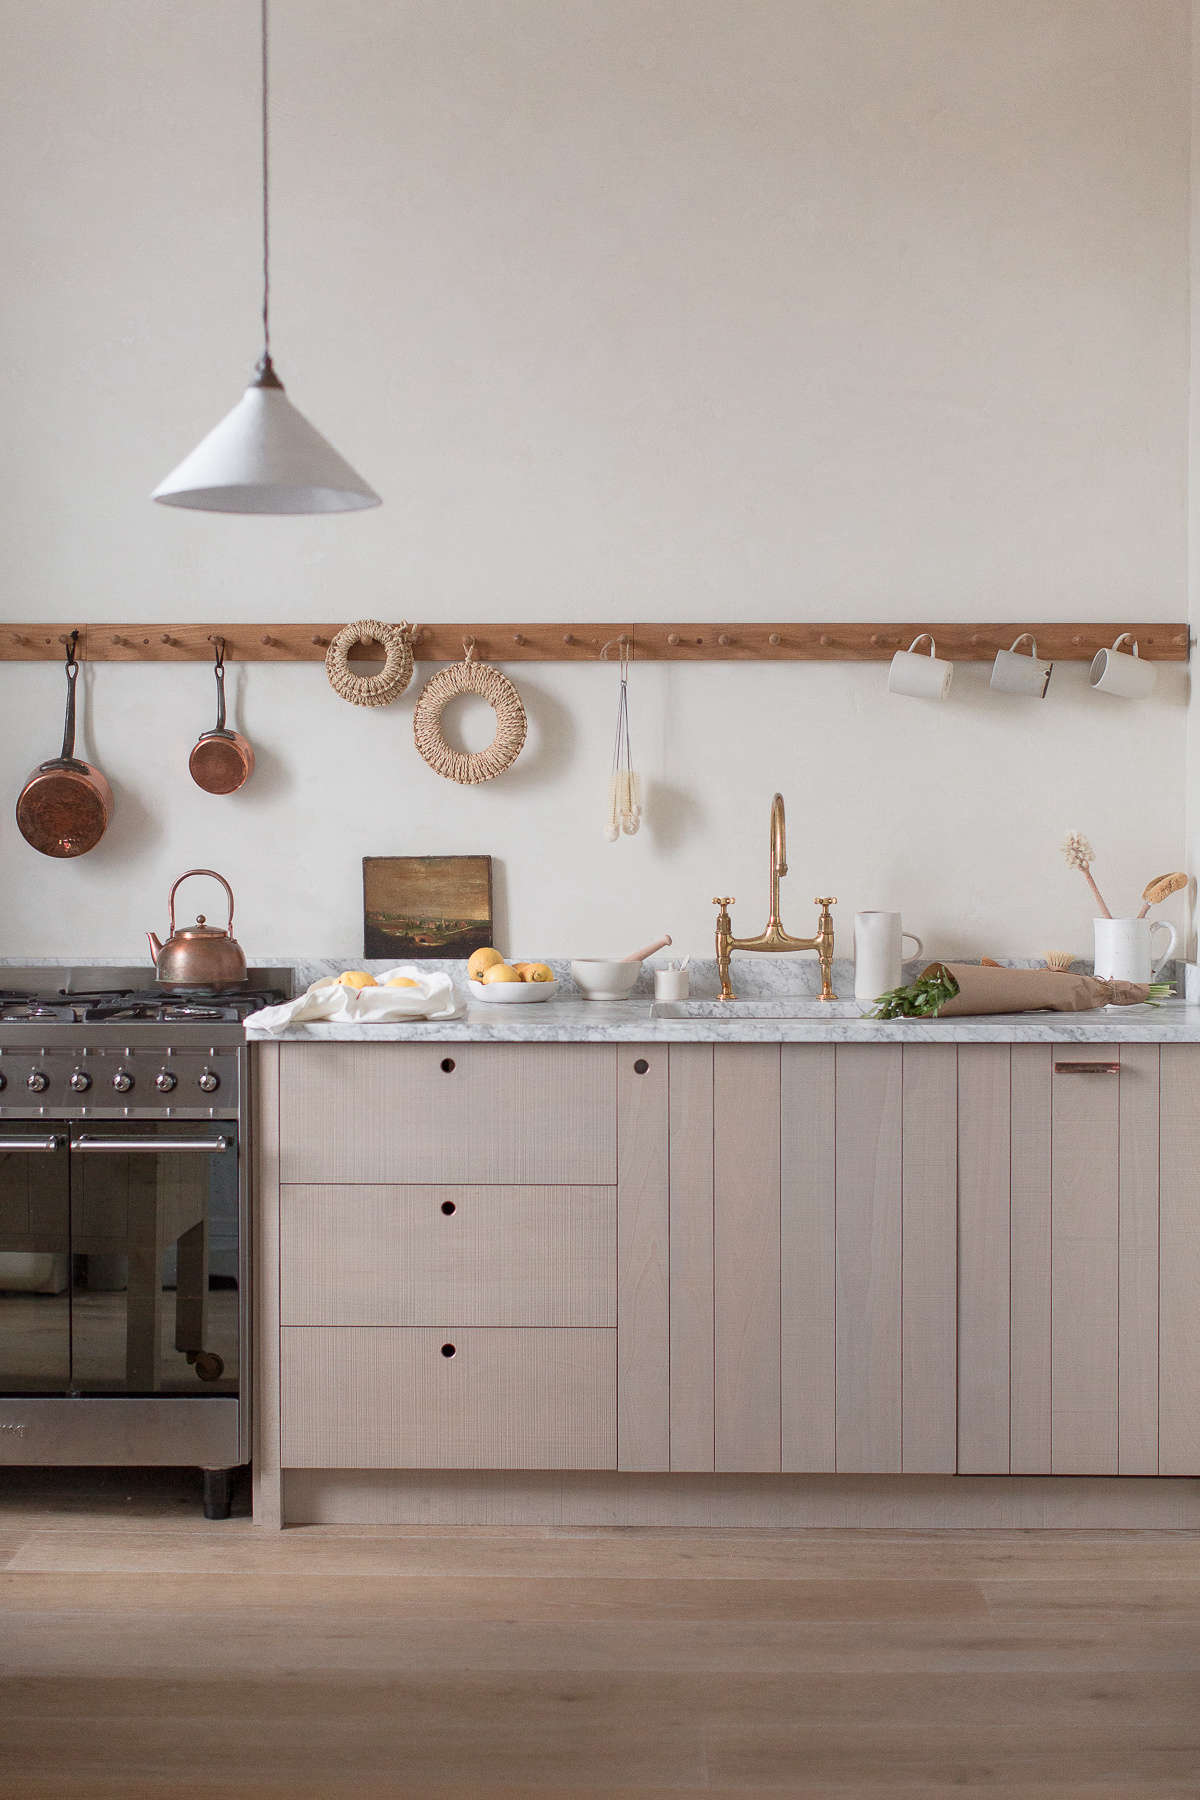 At Home And Work With The Nina Plummer Of Online Interiors Store Ingredients Ldn